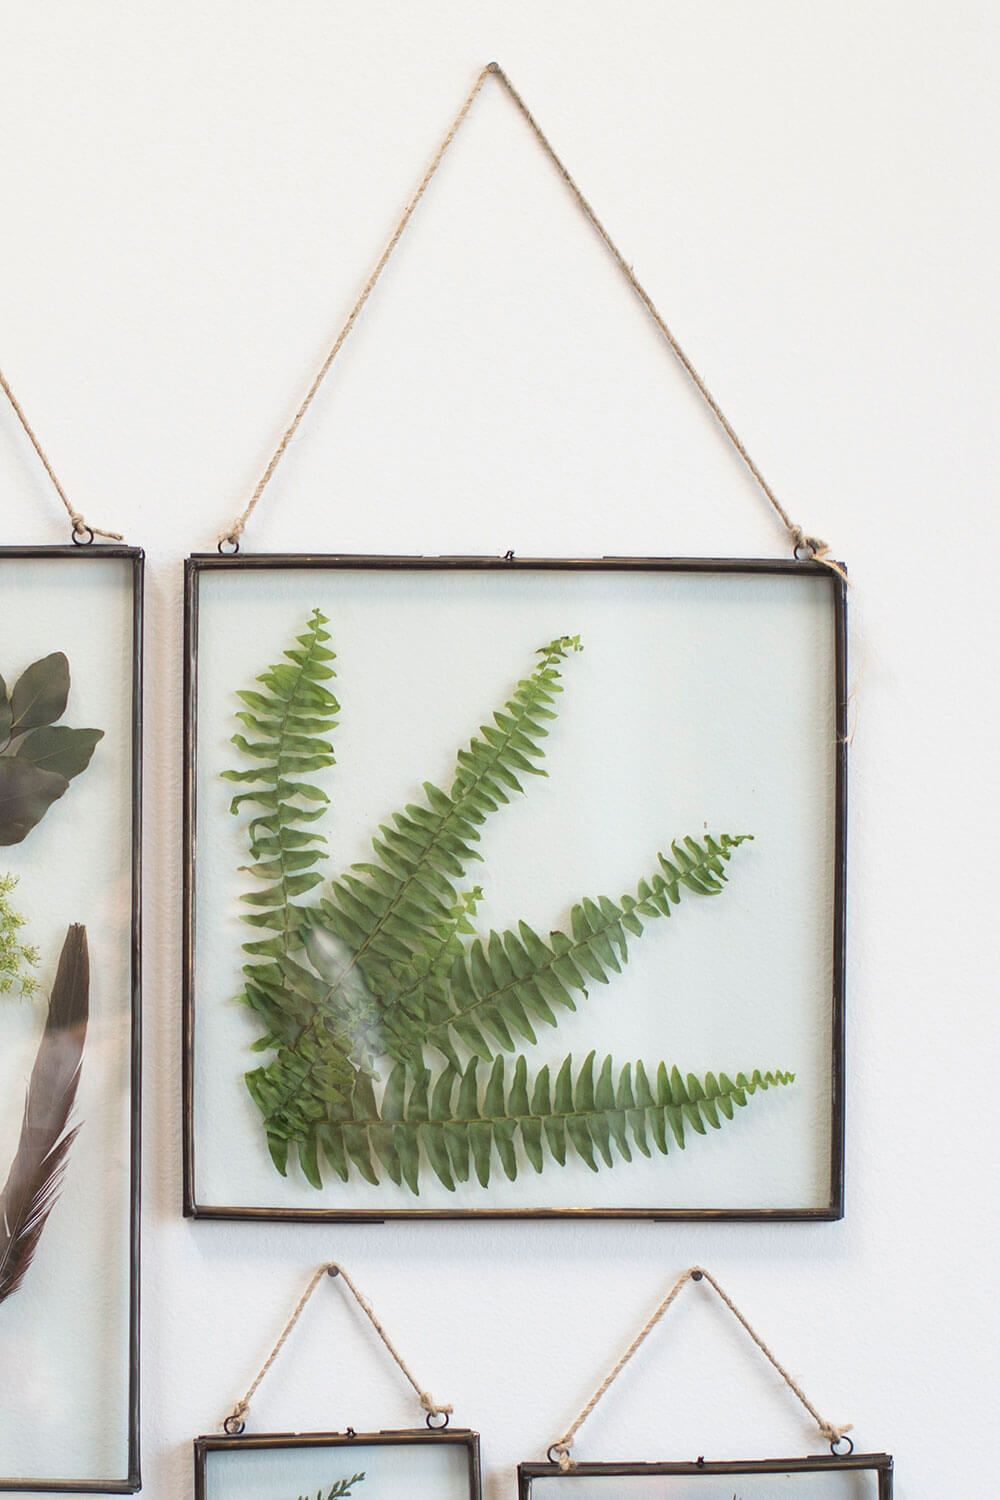 Pleasing Hanging Metal Double Glass Frame 14 X 14 75 Y E S Download Free Architecture Designs Scobabritishbridgeorg